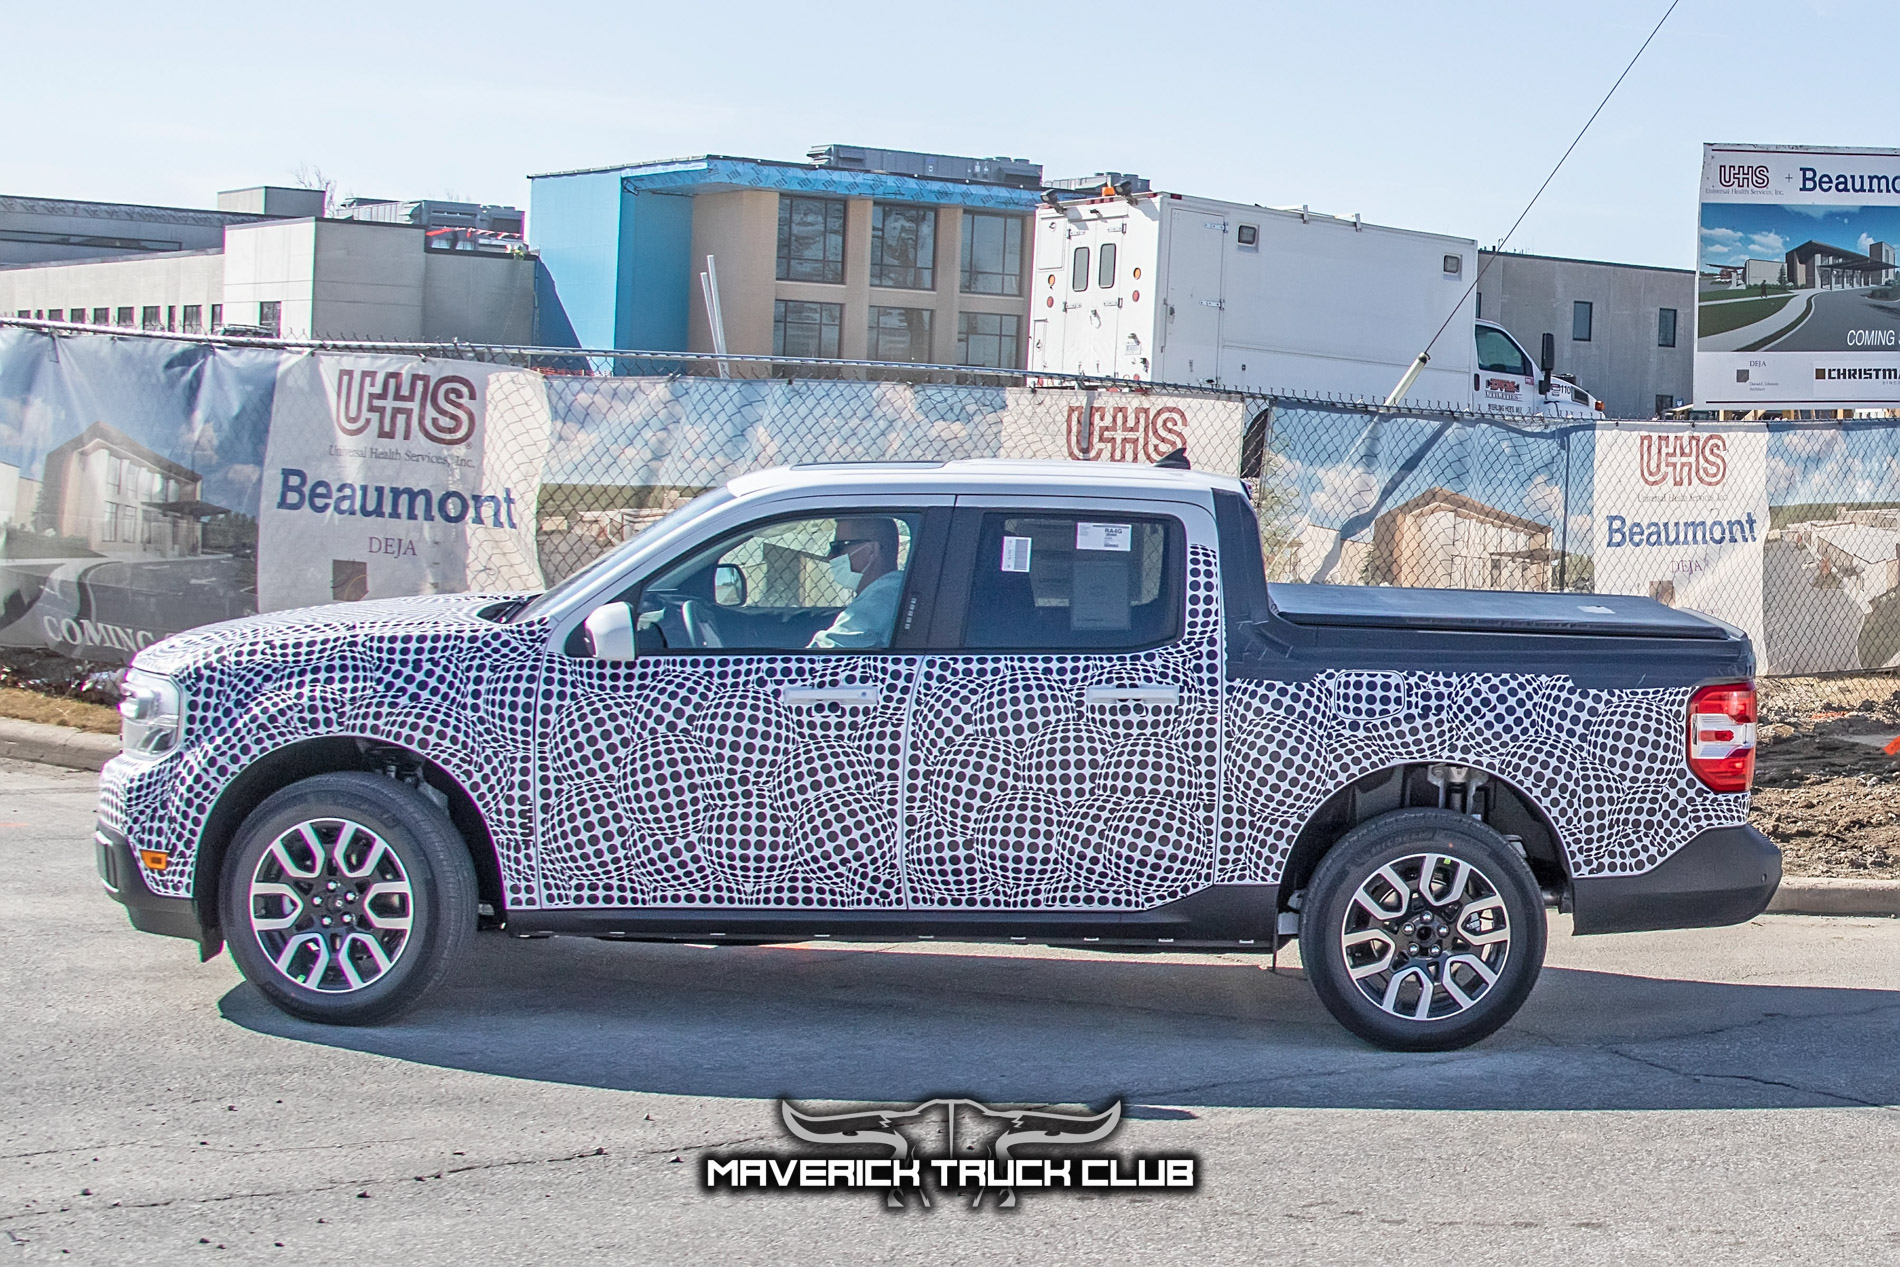 2022 Ford Maverick Pickup Spied 11.jpg